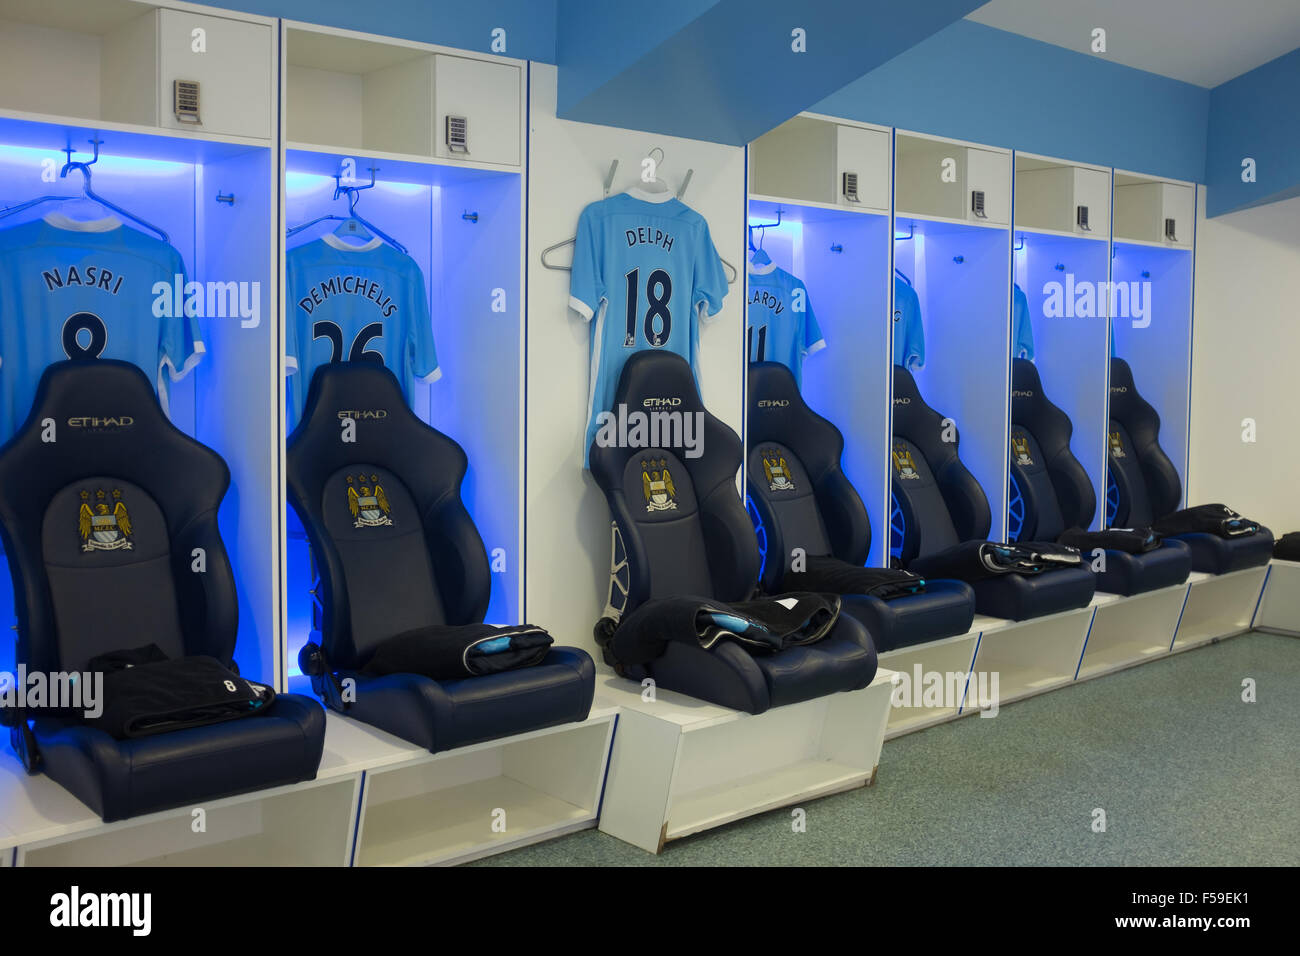 Baseball Themed Bedrooms The Dressing Changing Rooms At Manchester City Football